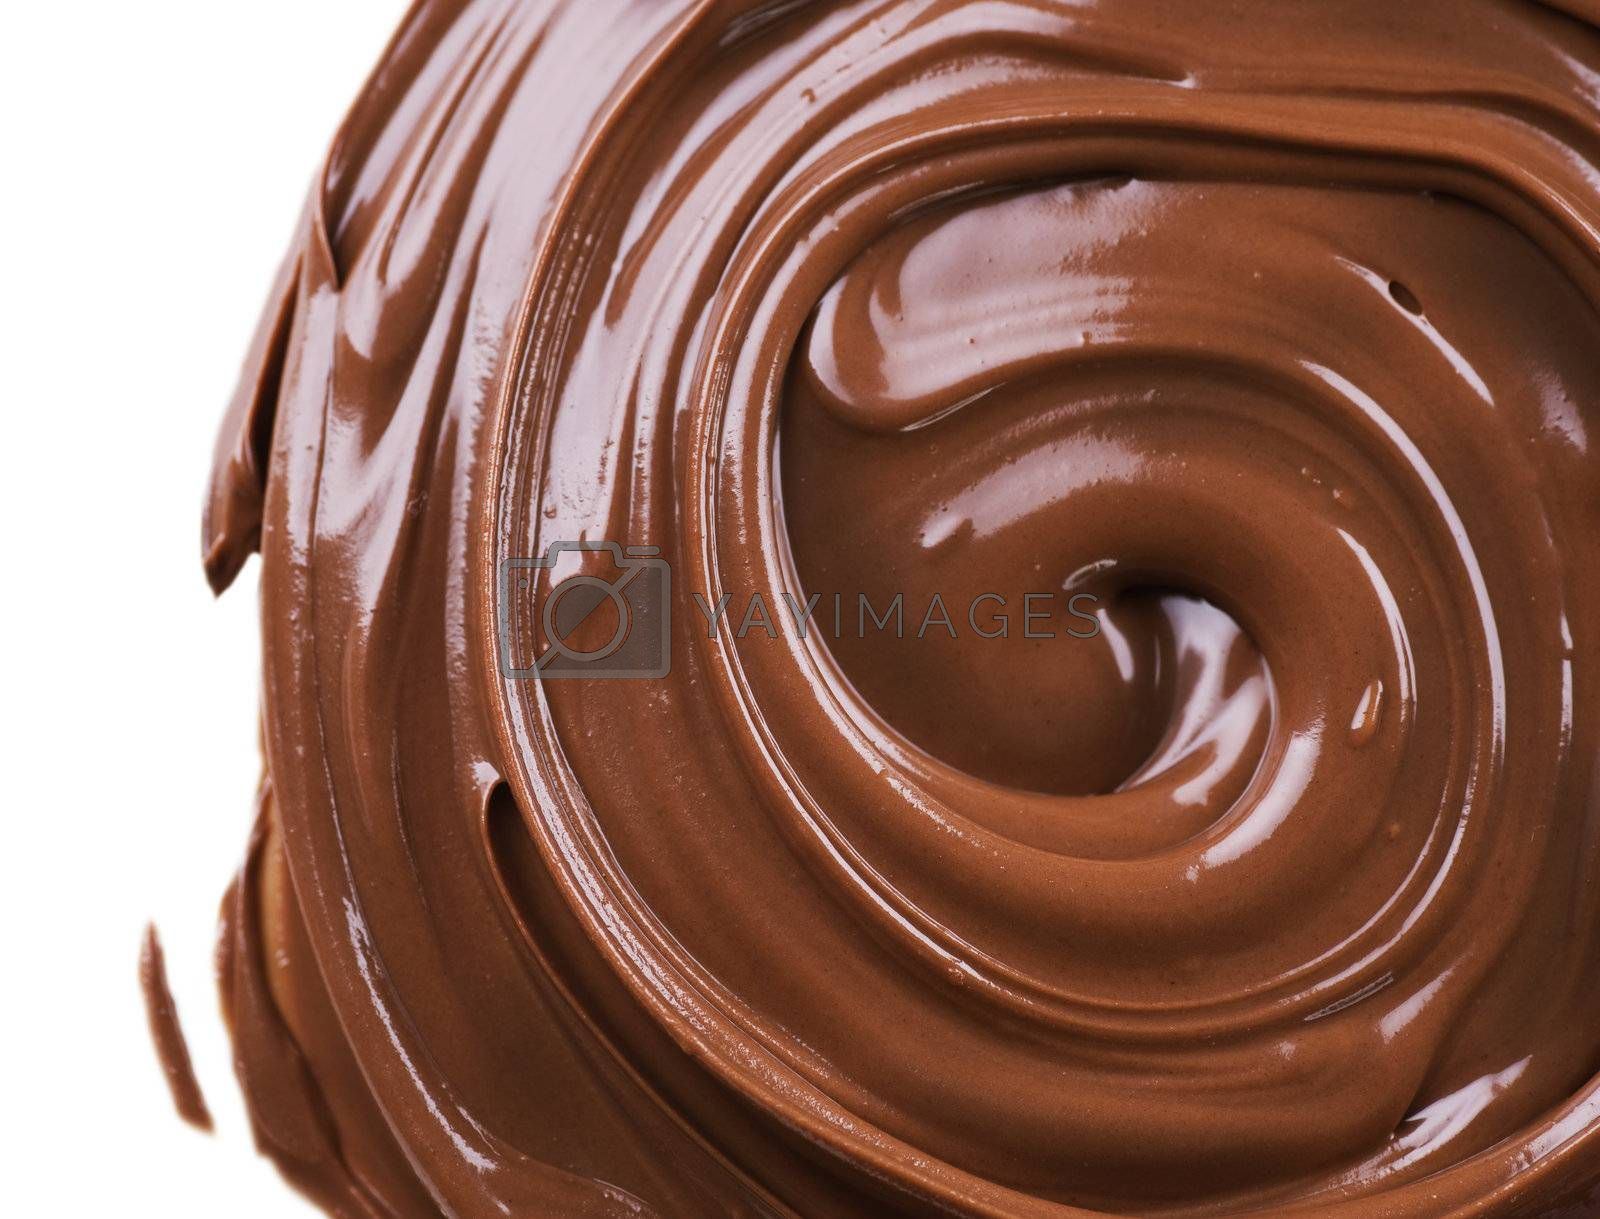 Chocolate background by Subbotina Anna